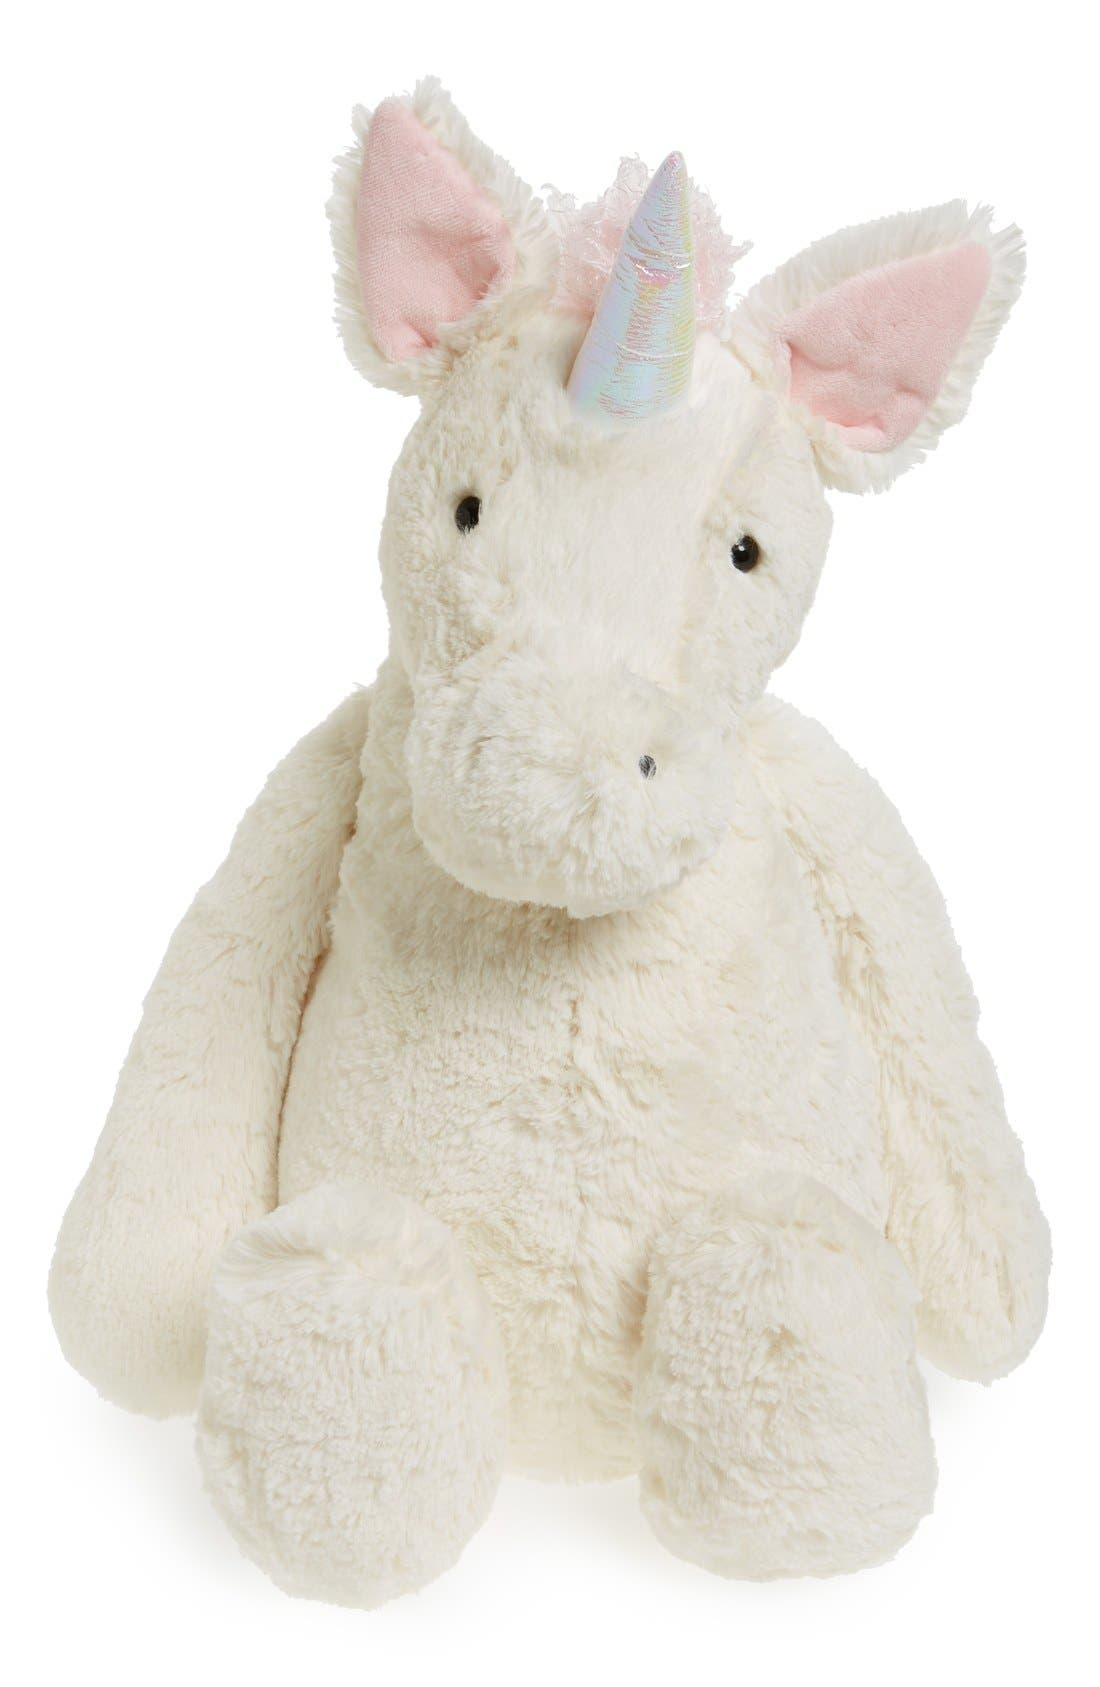 JELLYCAT 'Huge Bashful Unicorn' Stuffed Animal